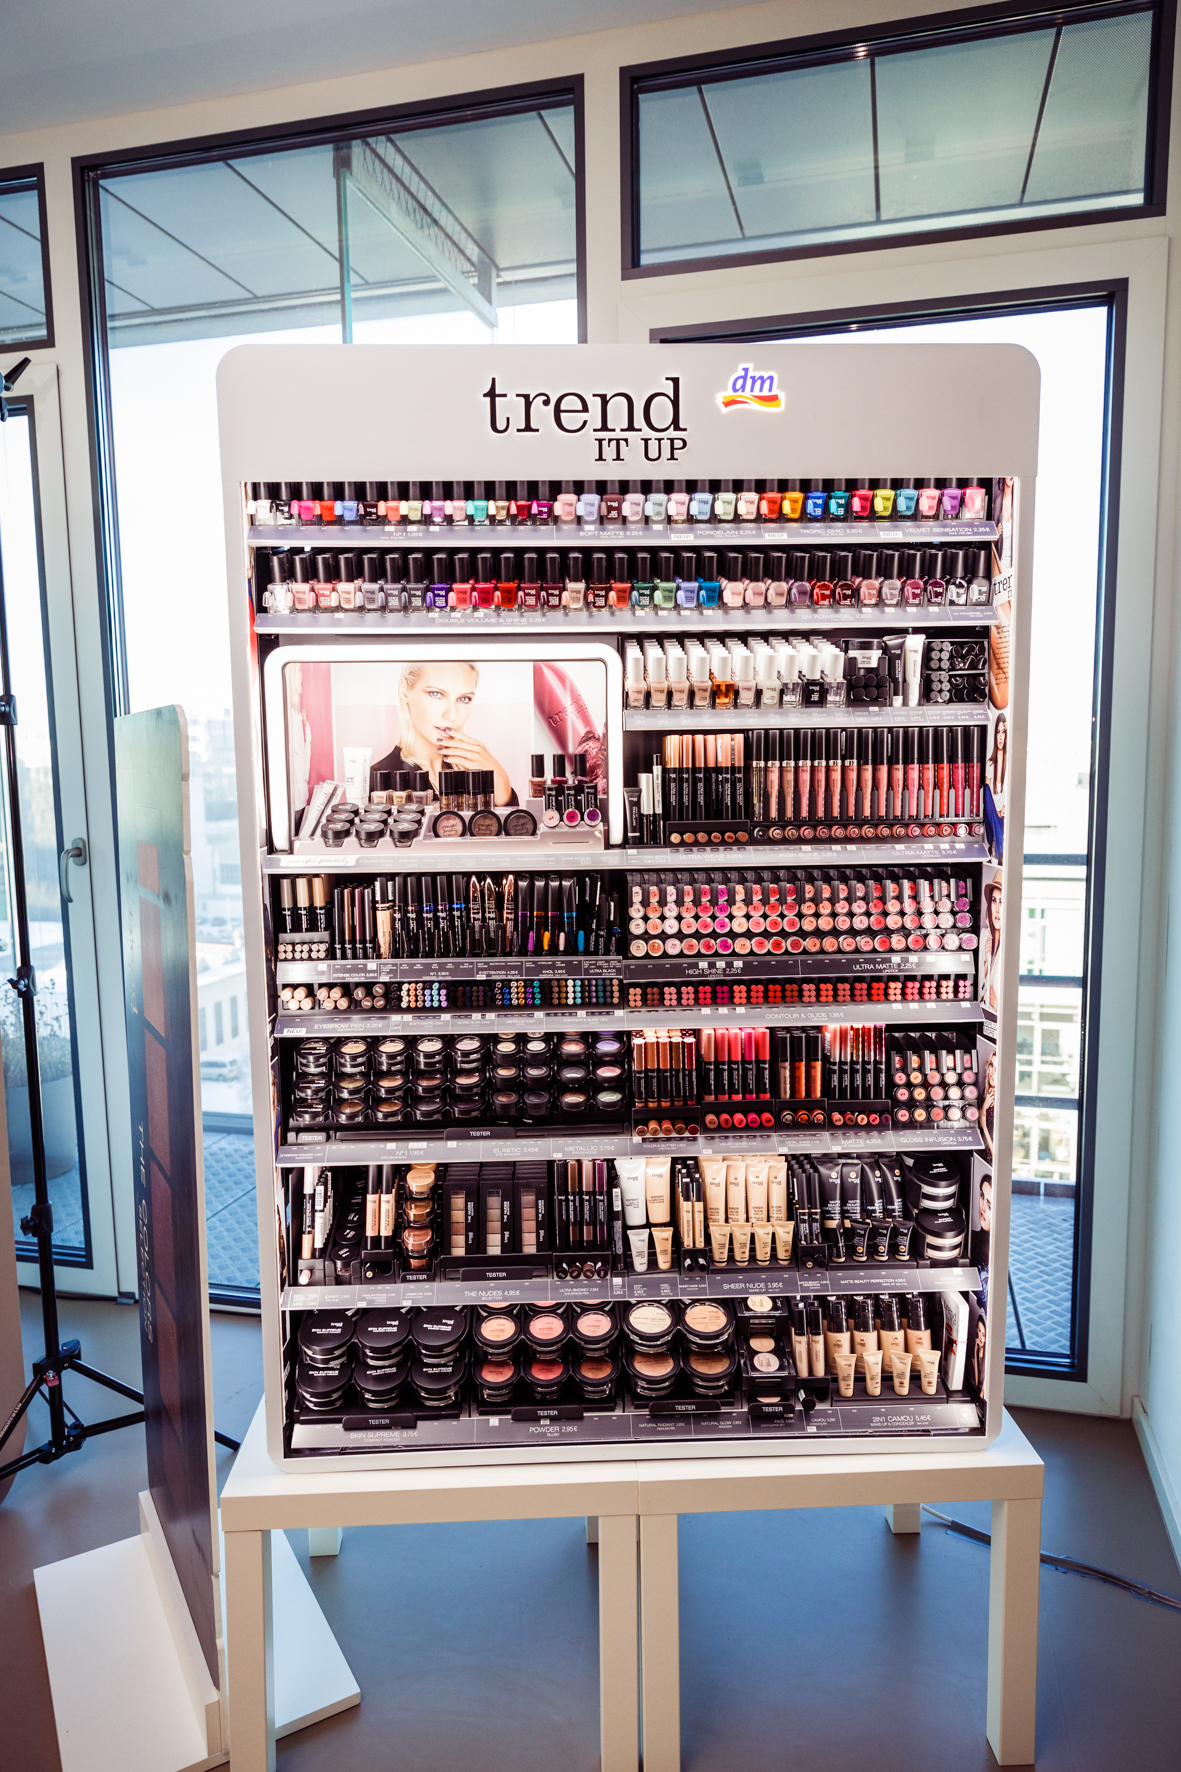 dm-trend-it-up-neuheiten-beauty-make-up-muc_067